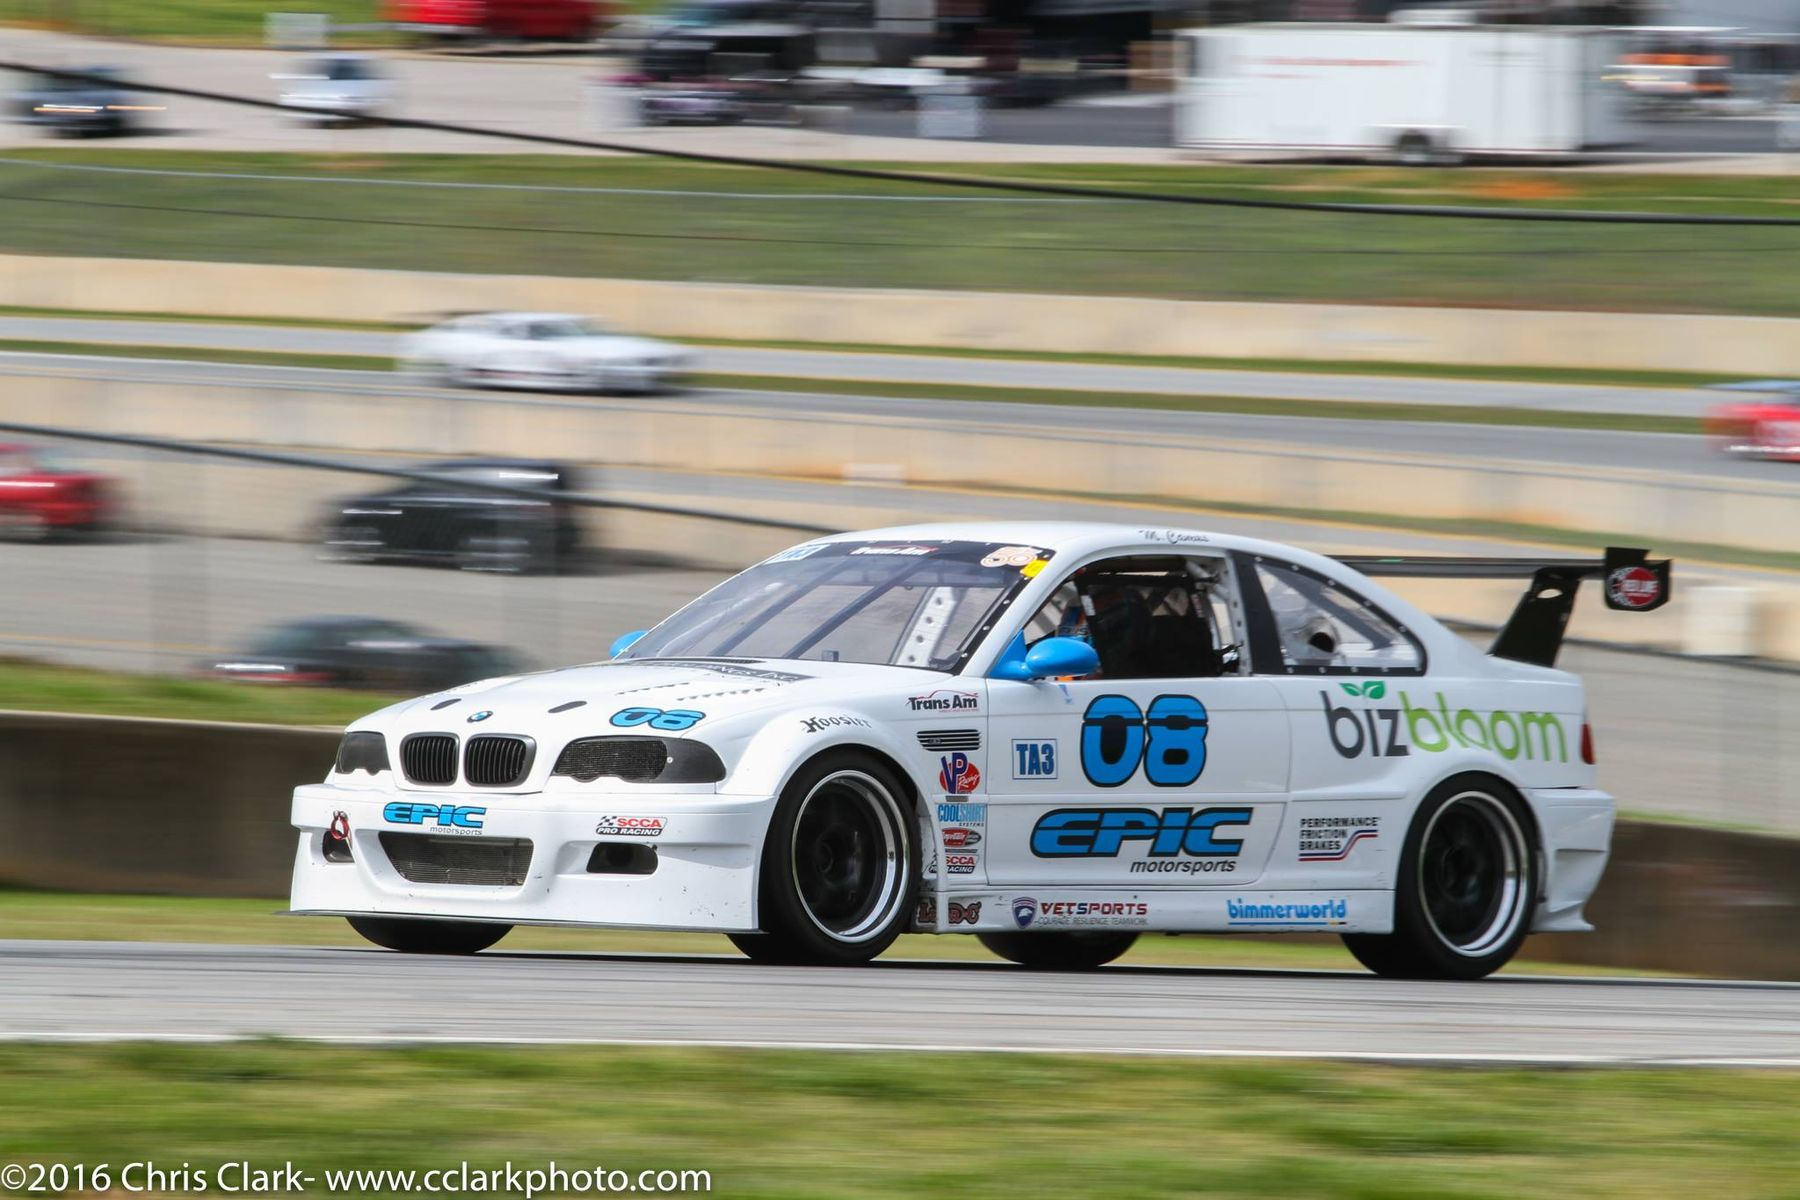 2004 BMW M3 | Michael Camus 4th at Trans Am Racing Round 2 at Road Atlanta in BMW M3 on Forgeline GA3R Wheels